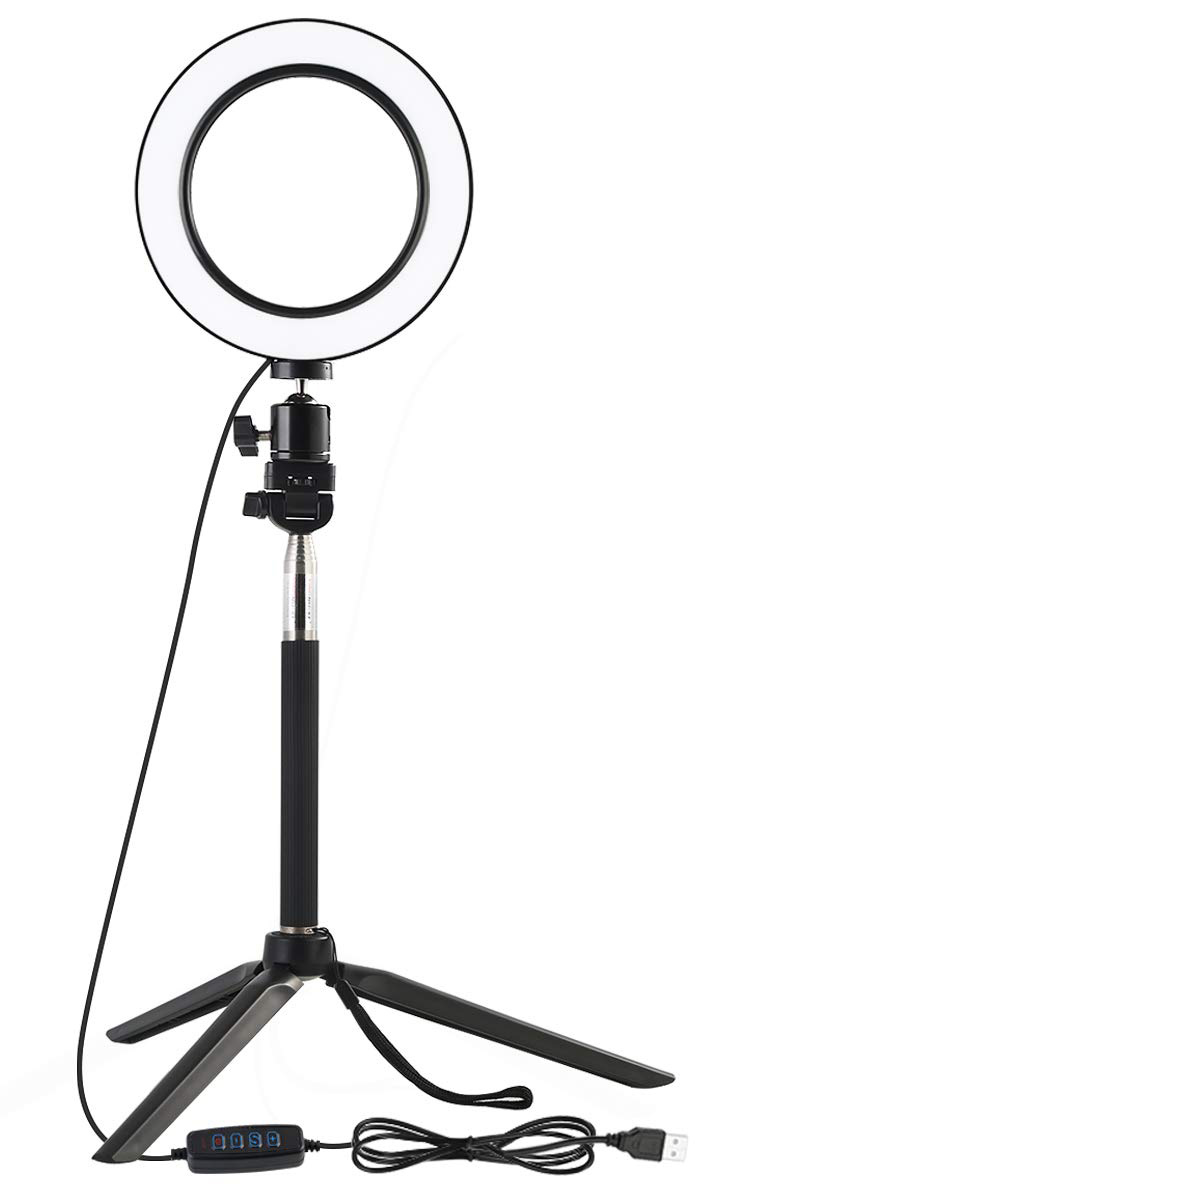 Ball Head LED Ringlight Make Up Light with Tripod Stand Phone Holder Dimmable 3 Light Modes and 10 Brightness Level for YouTube Video and Makeup Middle Pole 6 inch